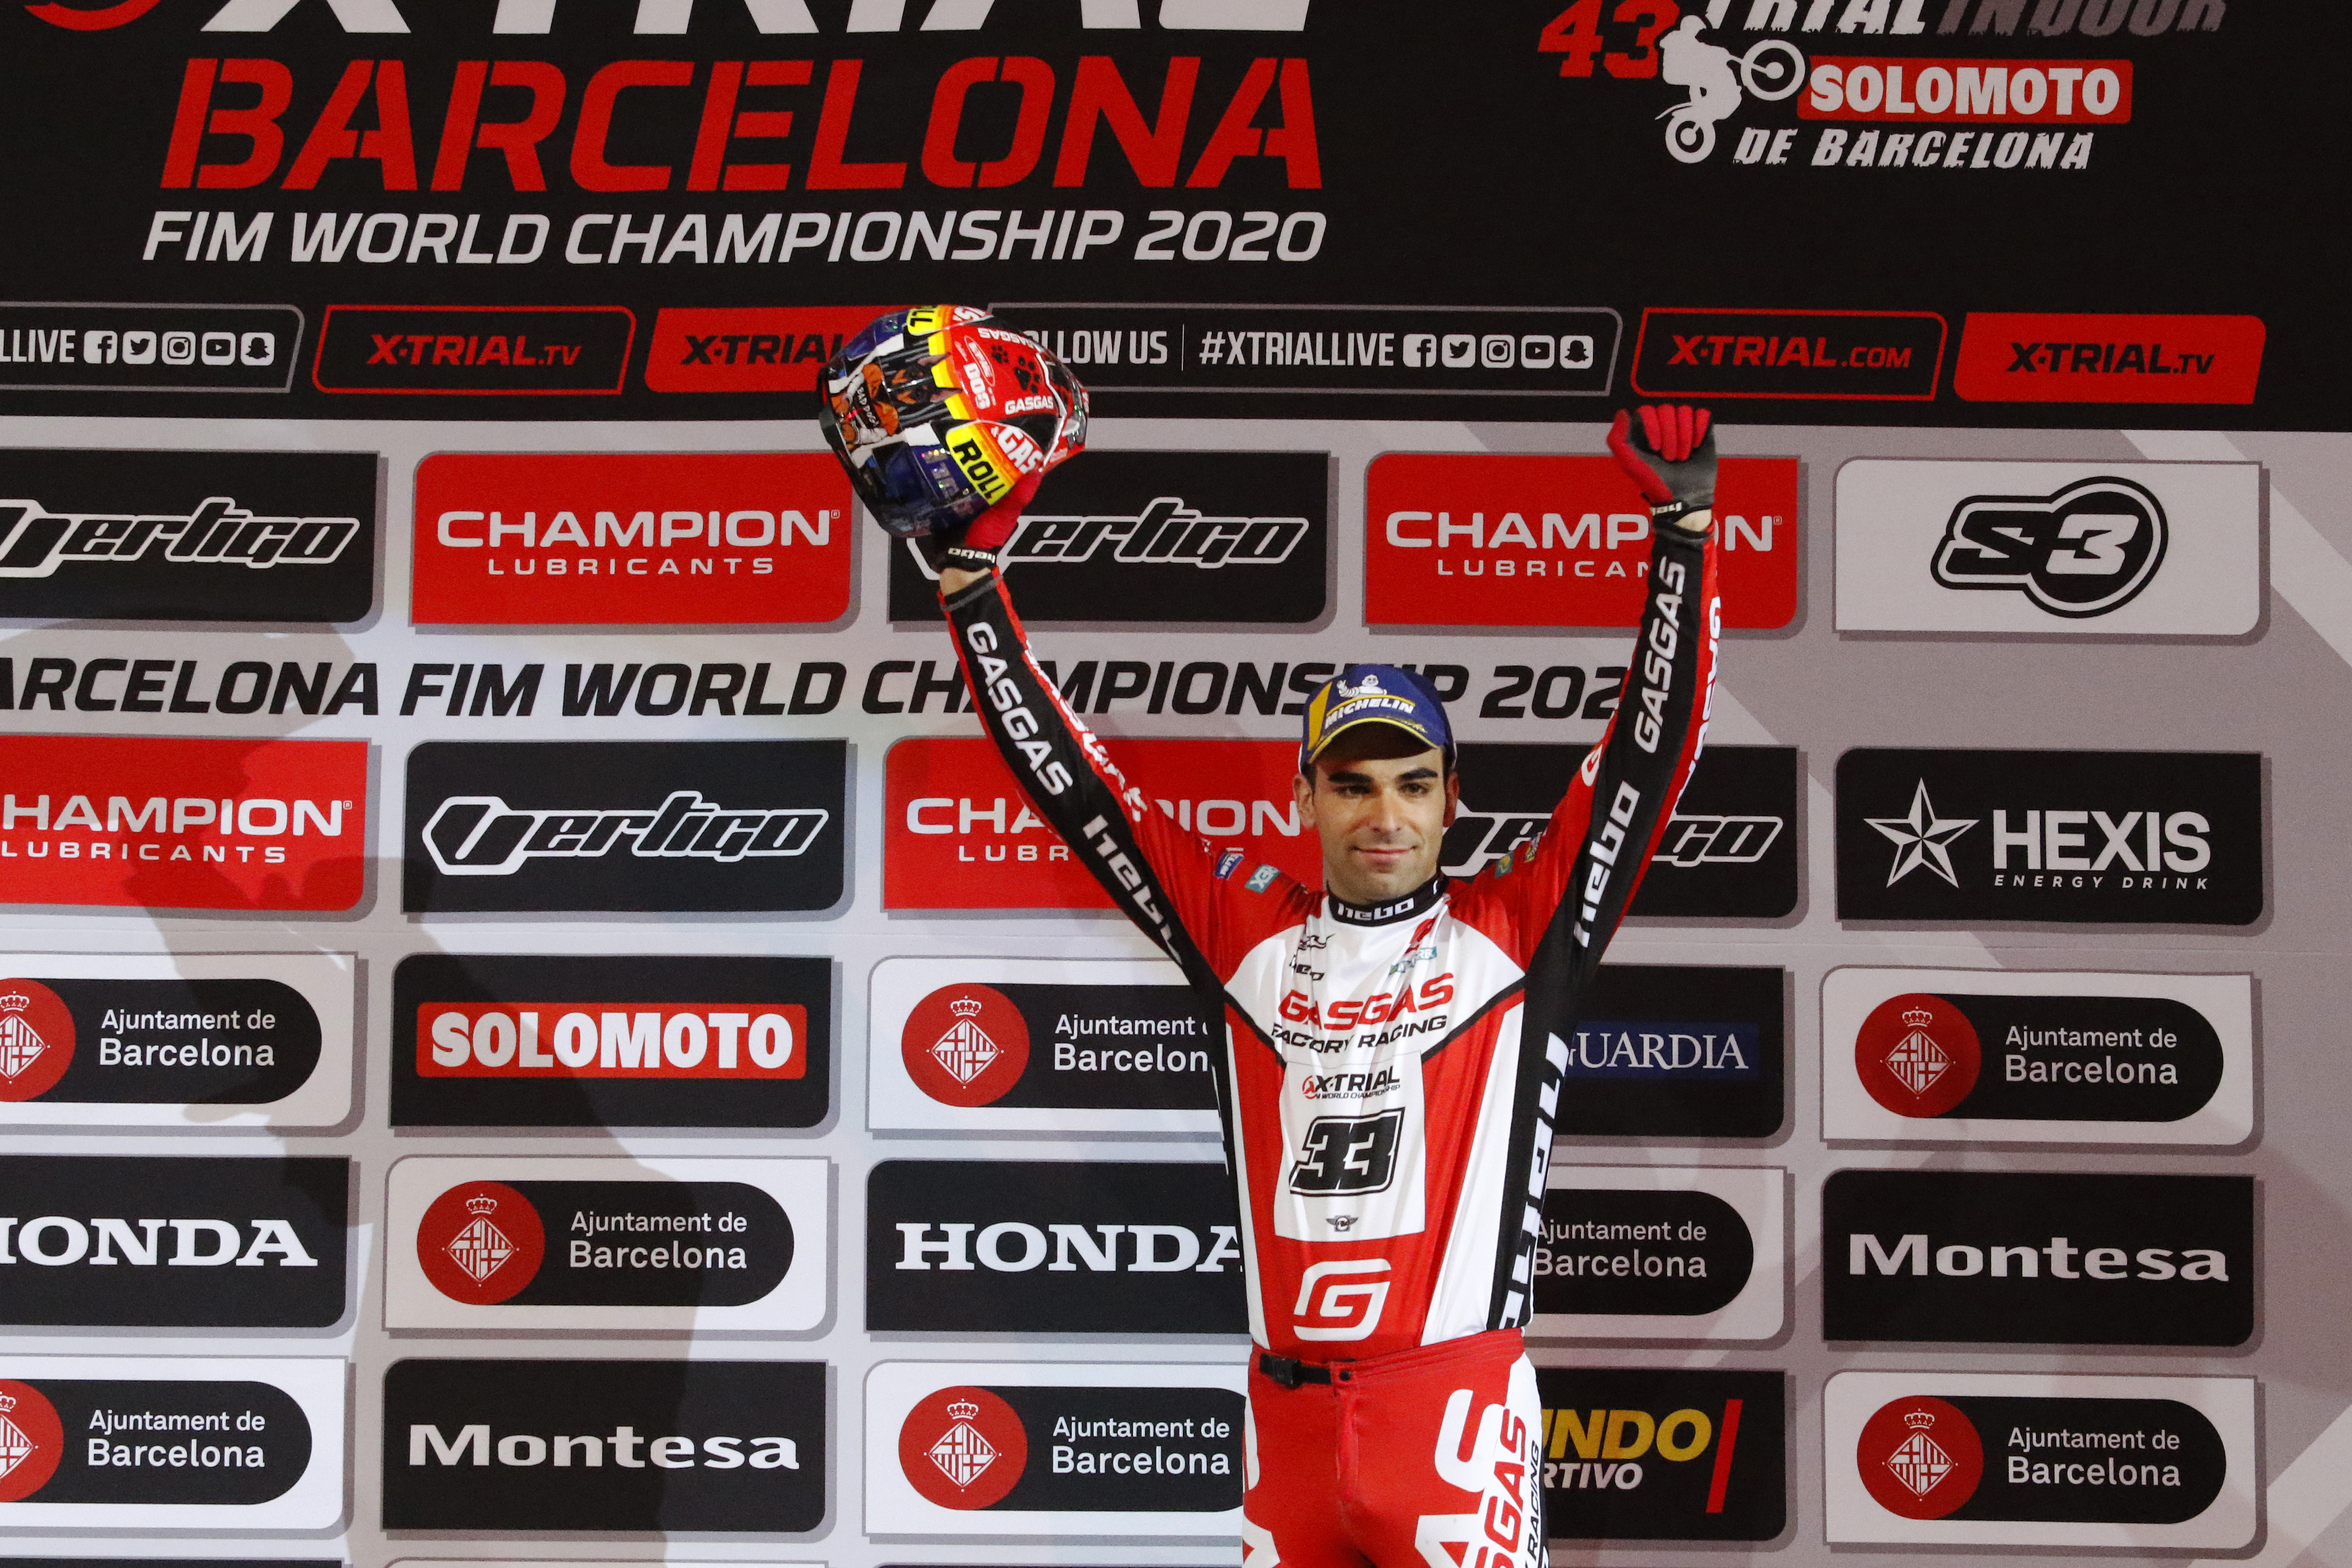 Jorge Casales secures podium win in X-Trial Barcelona